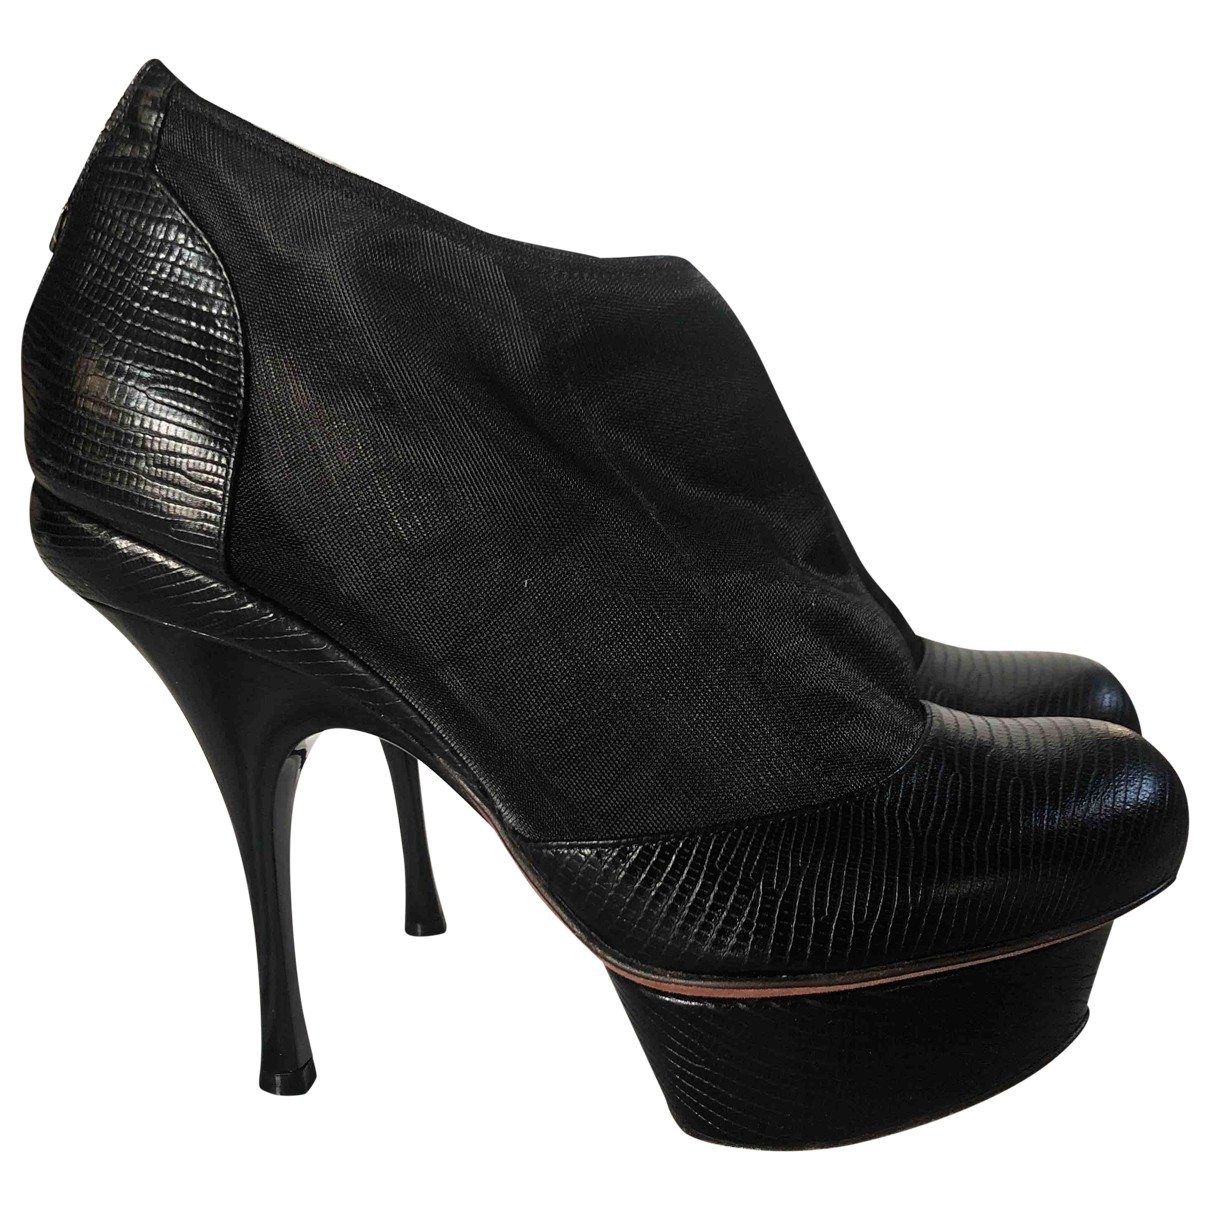 Nina Ricci \N Black Leather Ankle boots for Women 37.5 IT